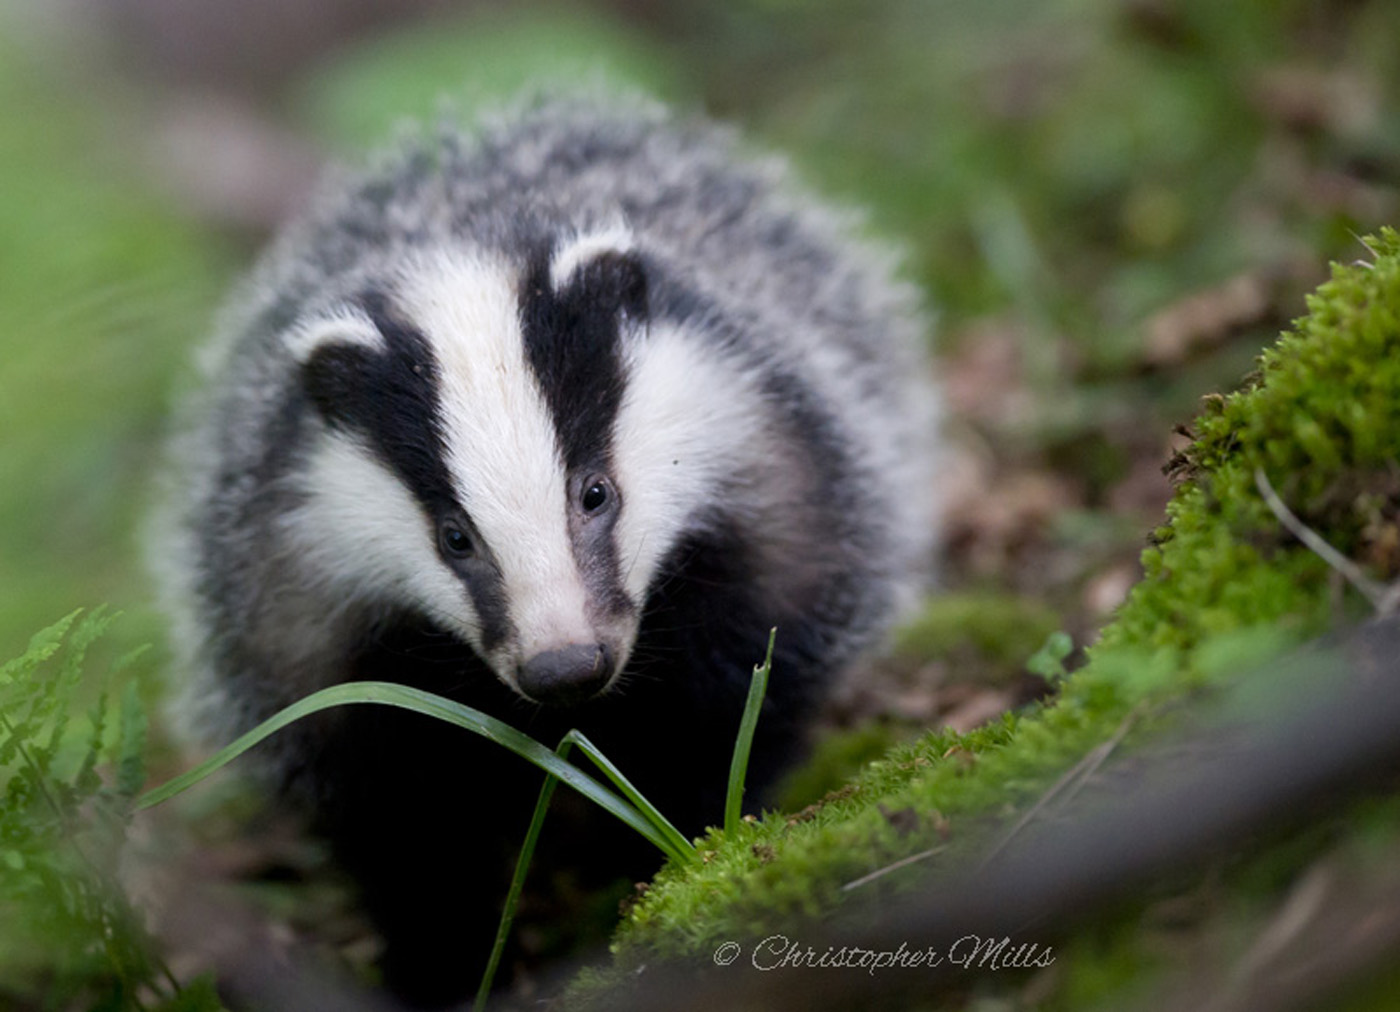 A European Badger (Meles meles) in woodland in West Sussex, England, UK.